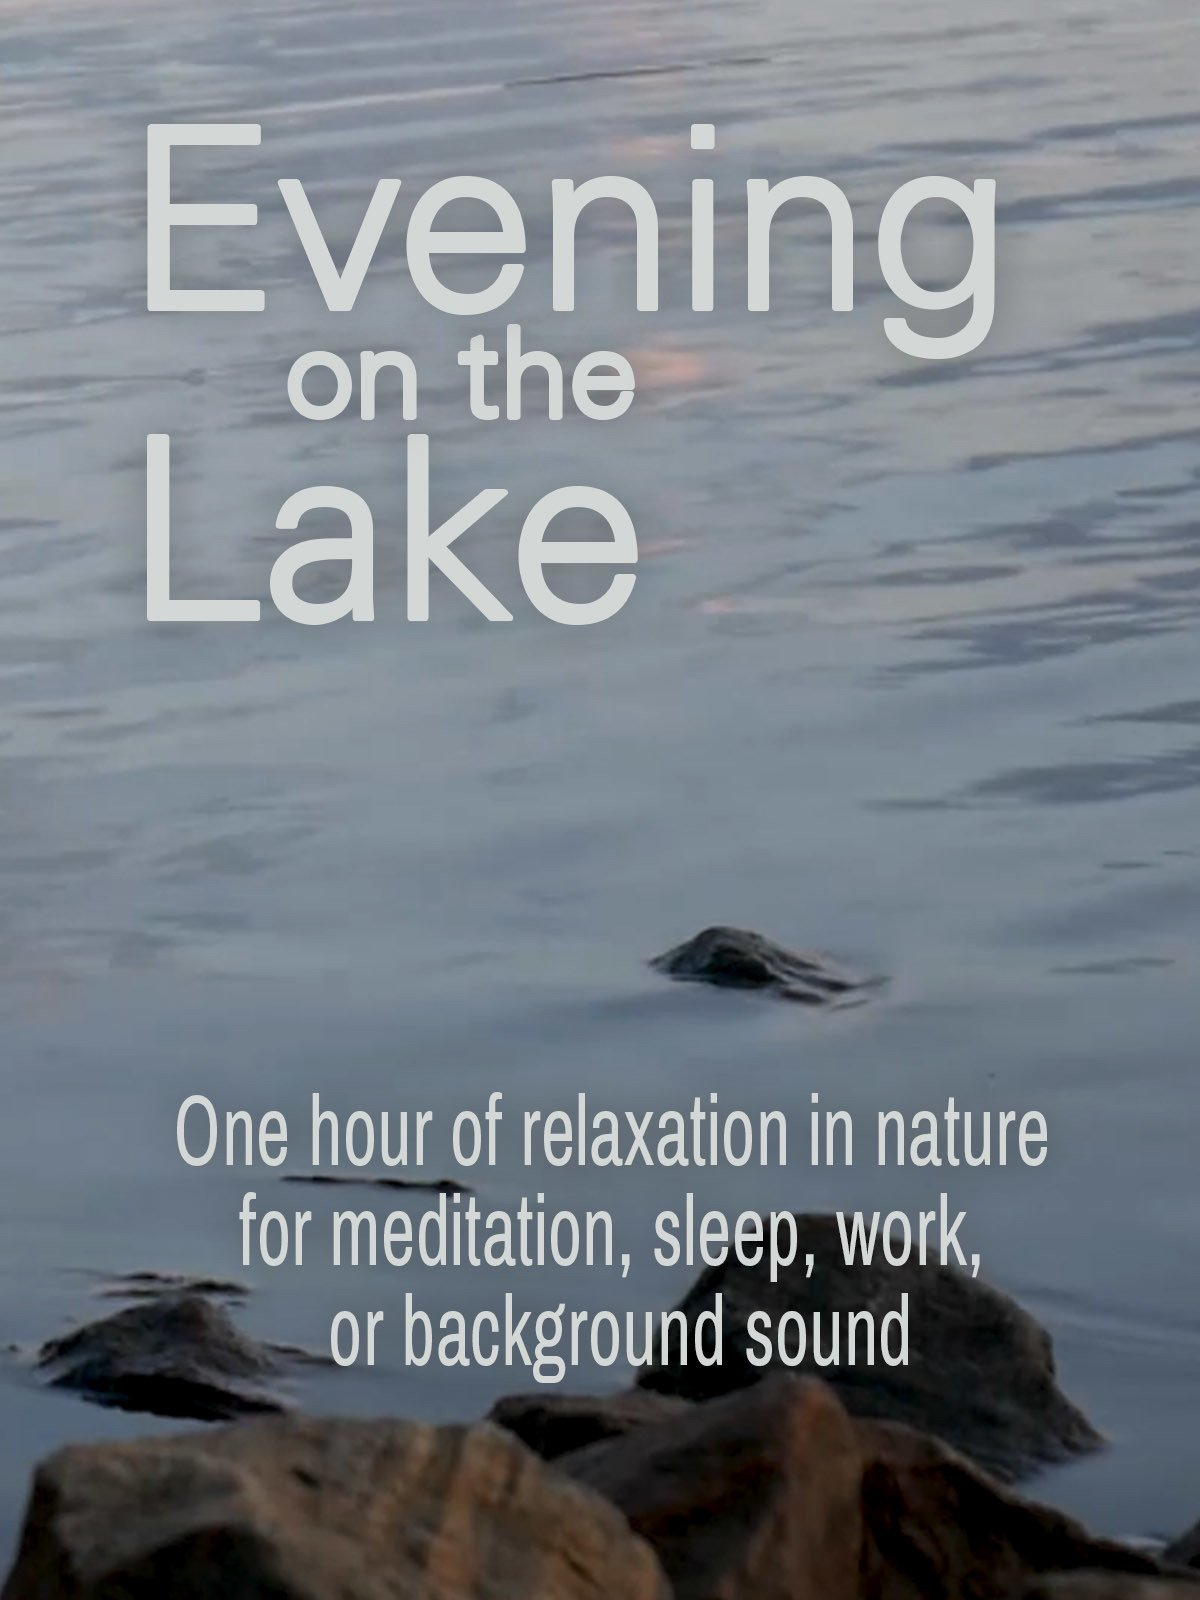 Evening on the Lake: One hour of relaxation in nature for meditation, sleep, work, or background sound